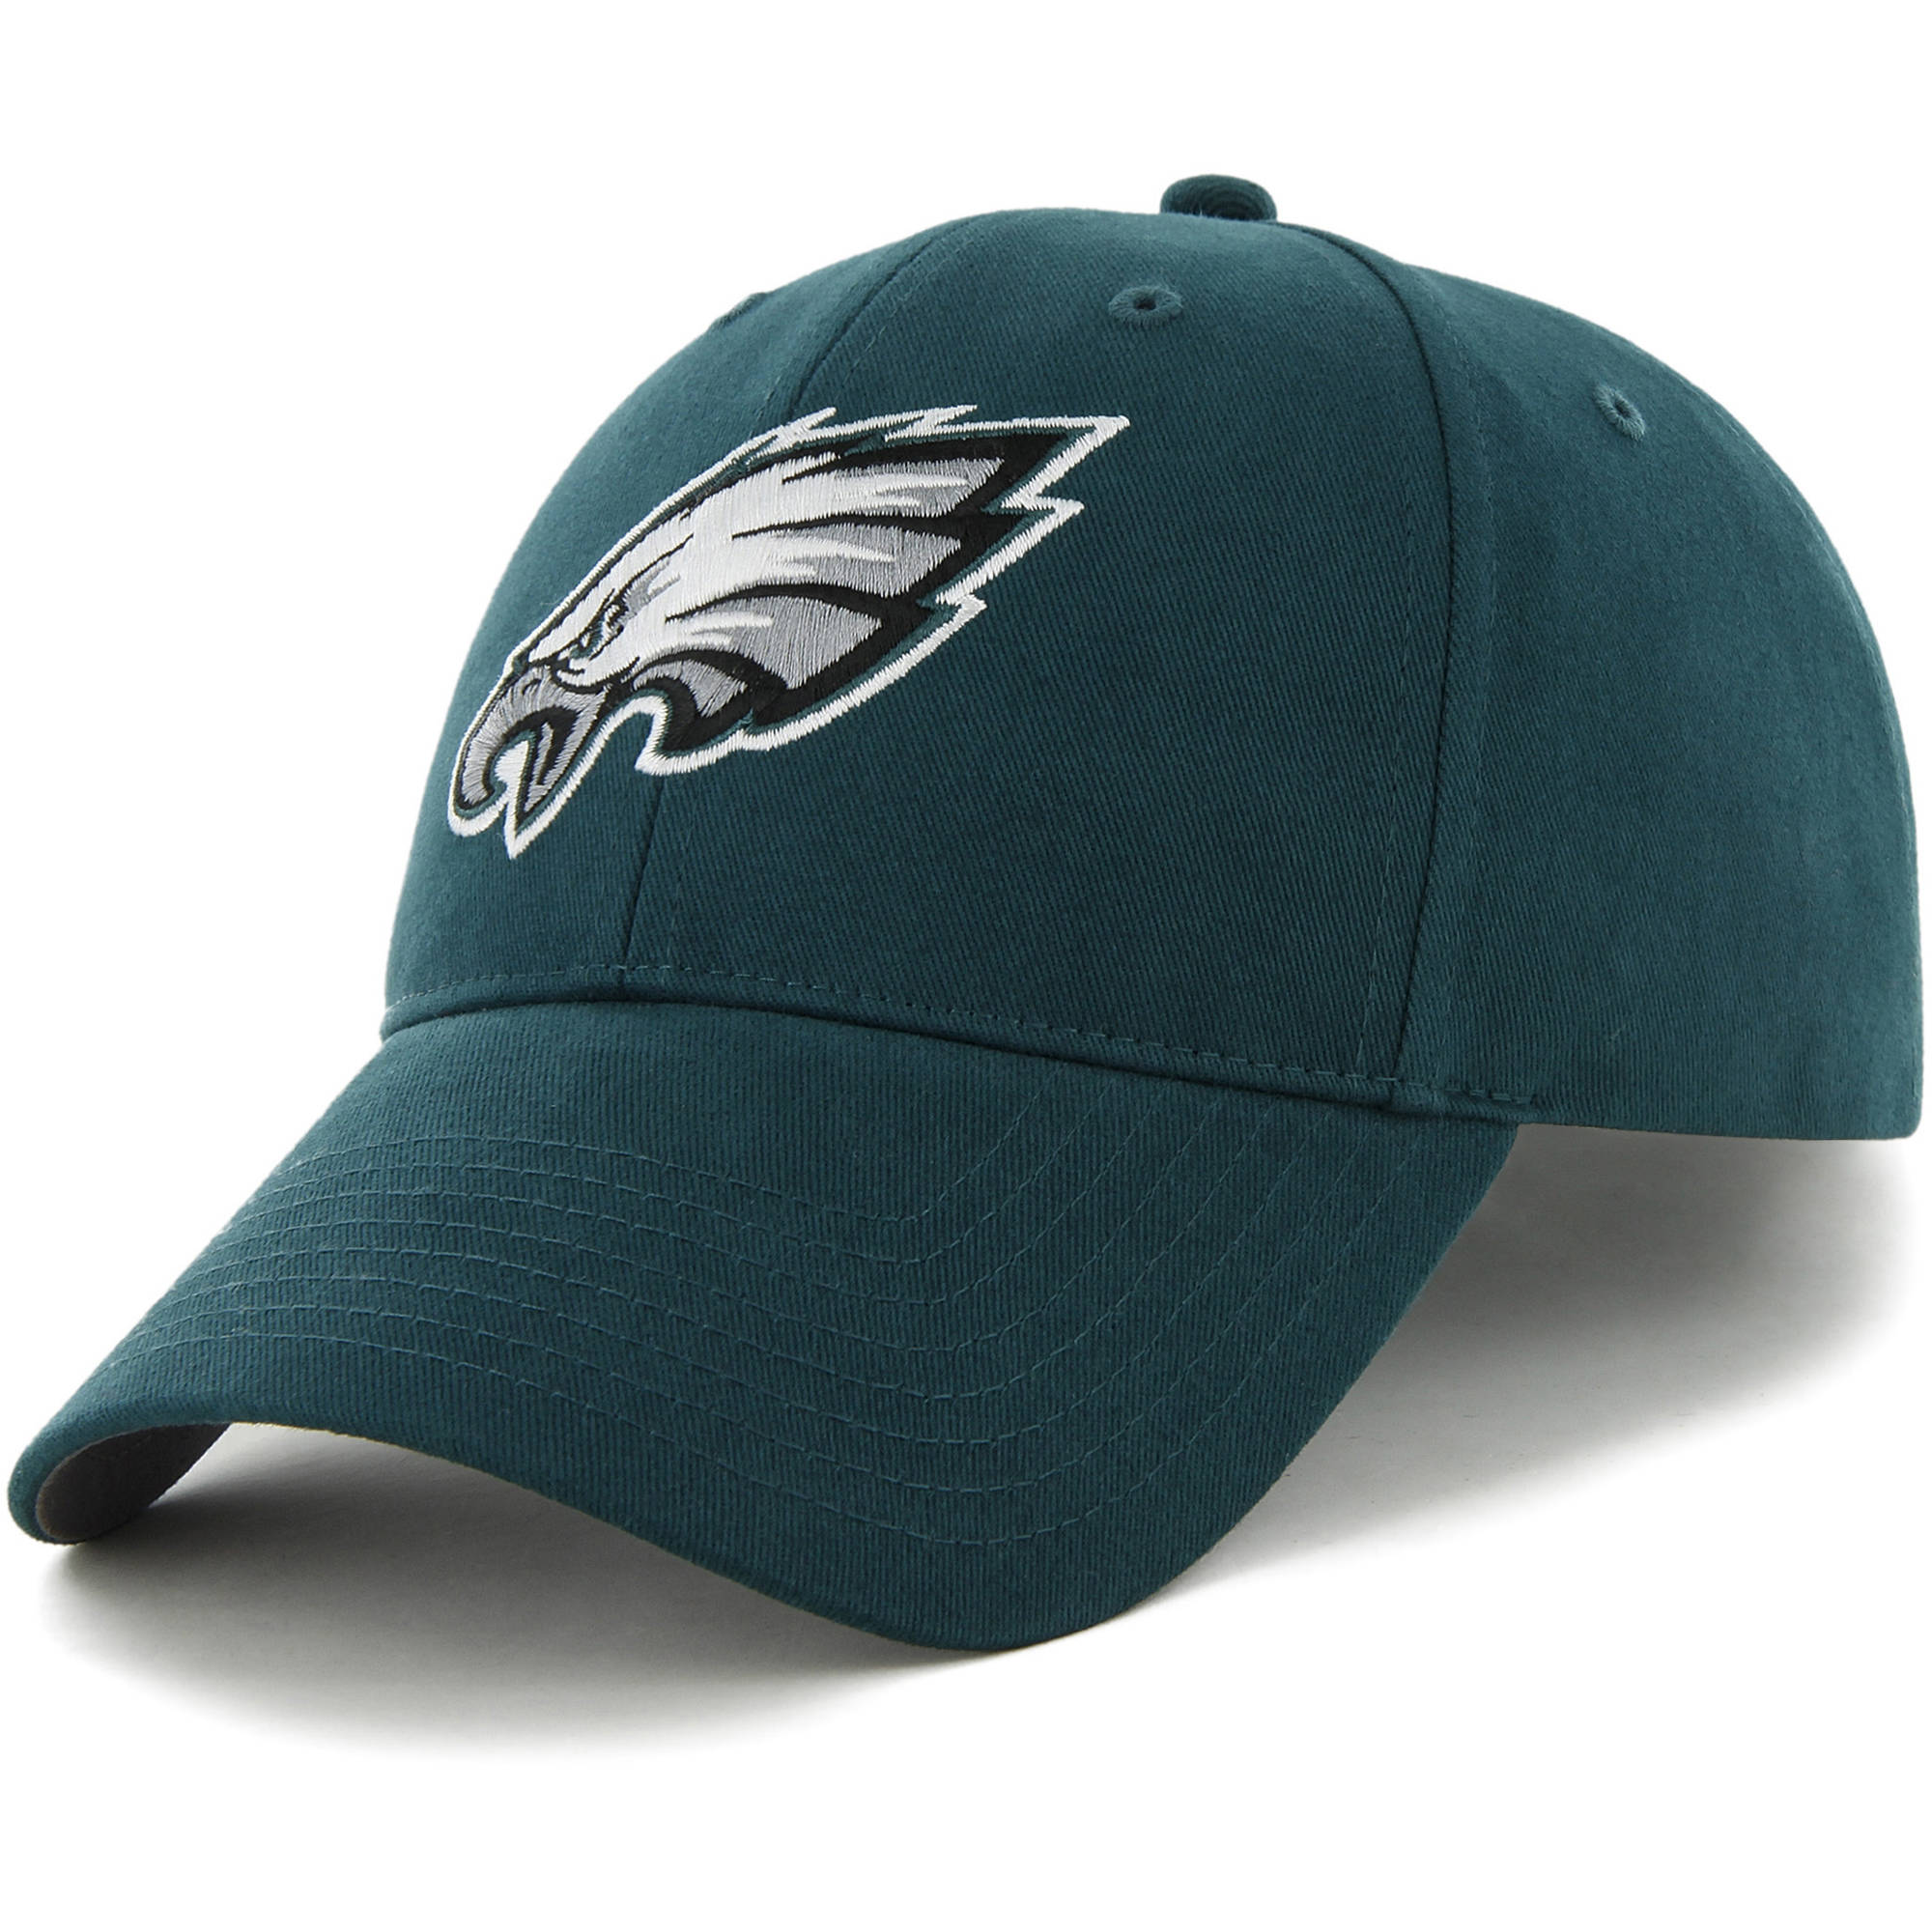 NFL Fan FavoriteBasic Cap, Philadelphia Eagles